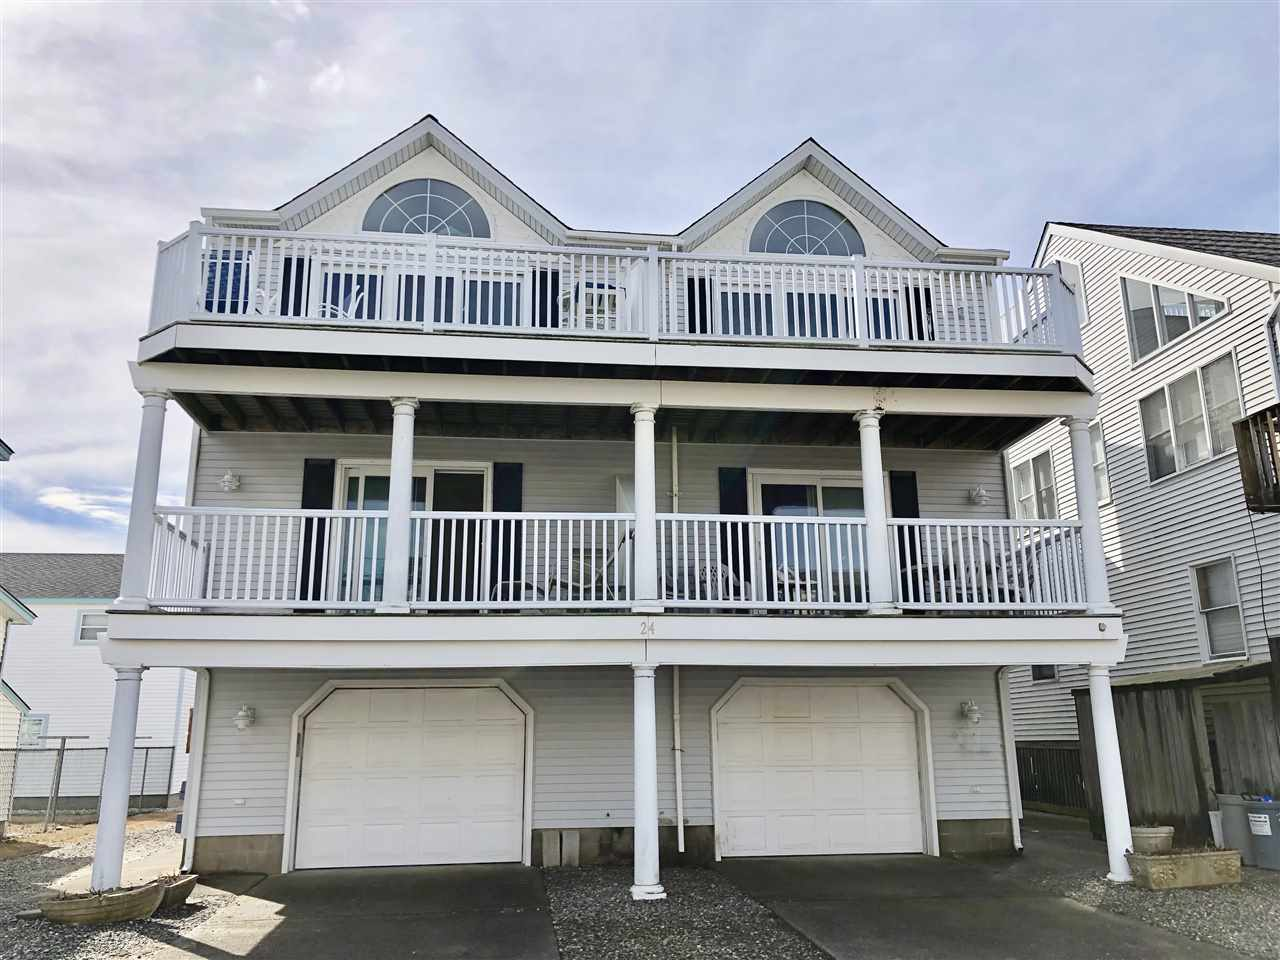 24 33rd Street - Sea Isle City